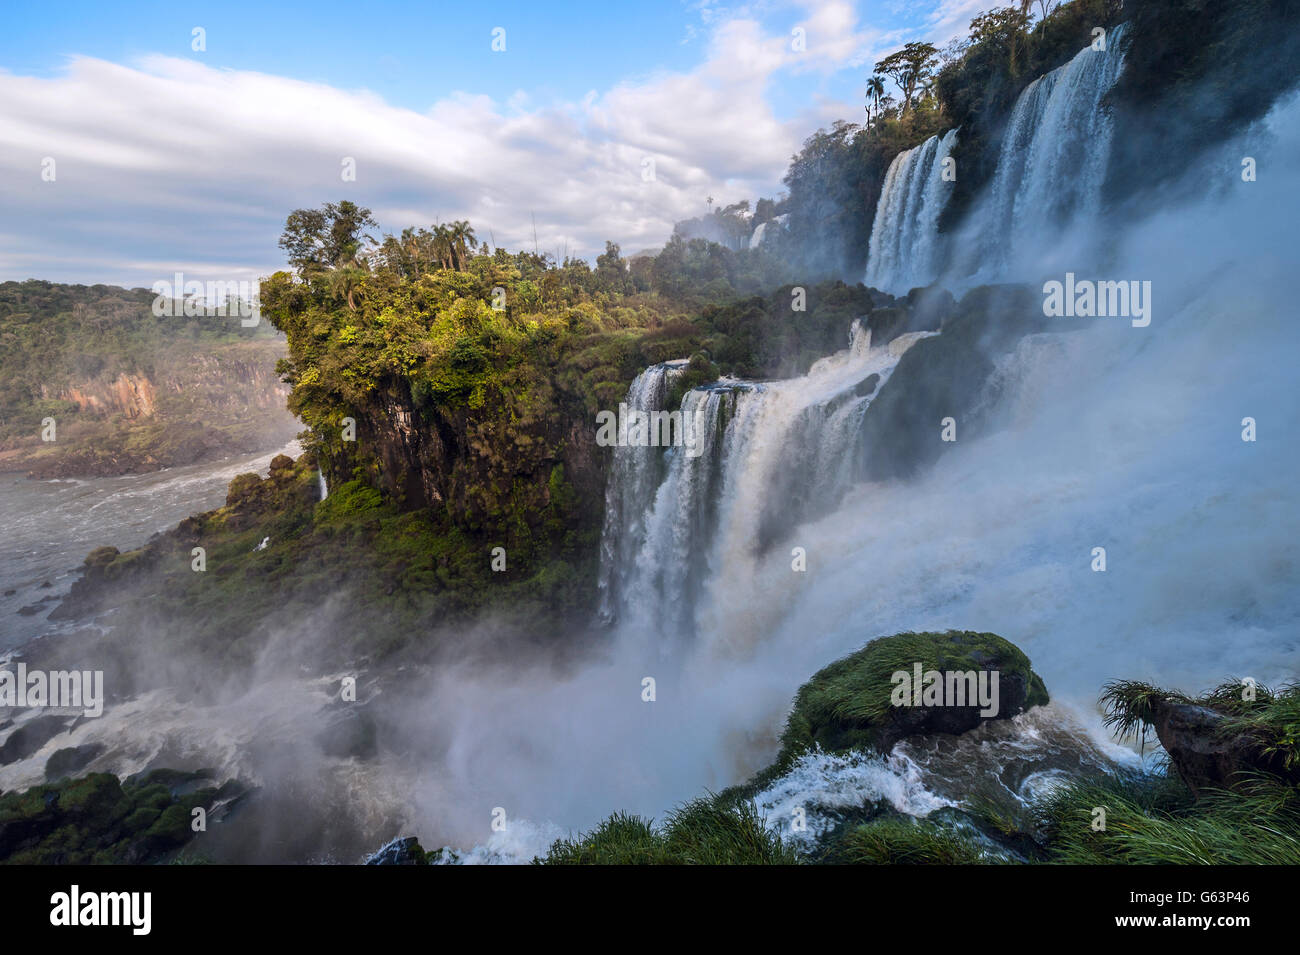 Iguacu Falls from the Argentina side - Stock Image